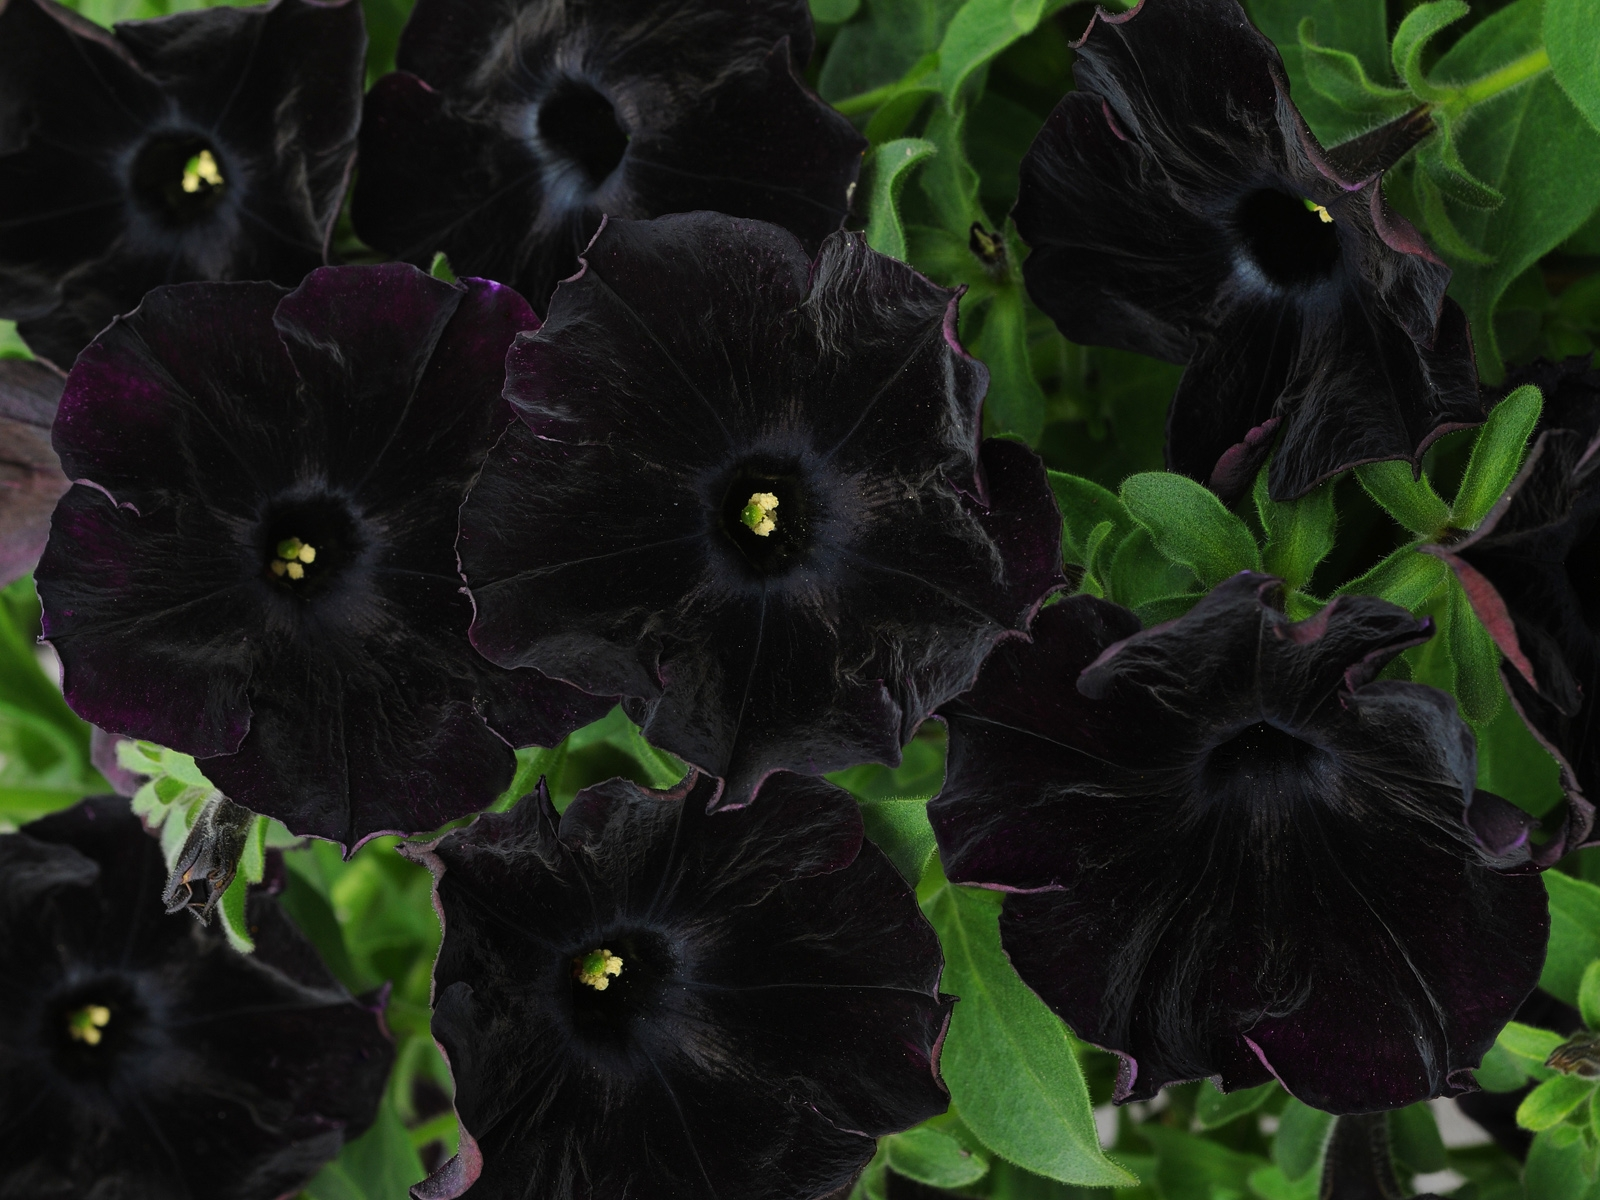 When and how to plant Gubastik (Mimulyus) in the garden plot